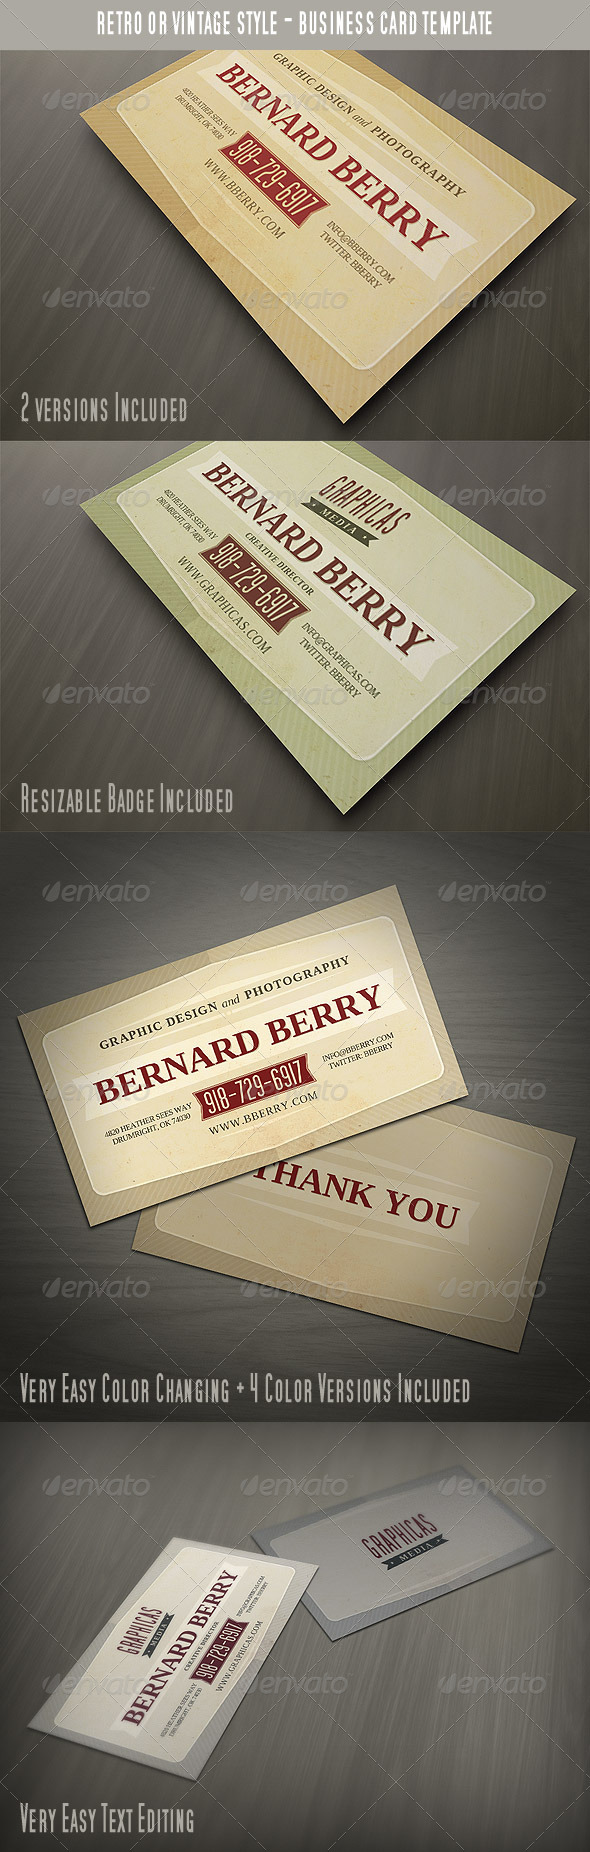 Retro or Vintage Style Business Card by vilord | GraphicRiver